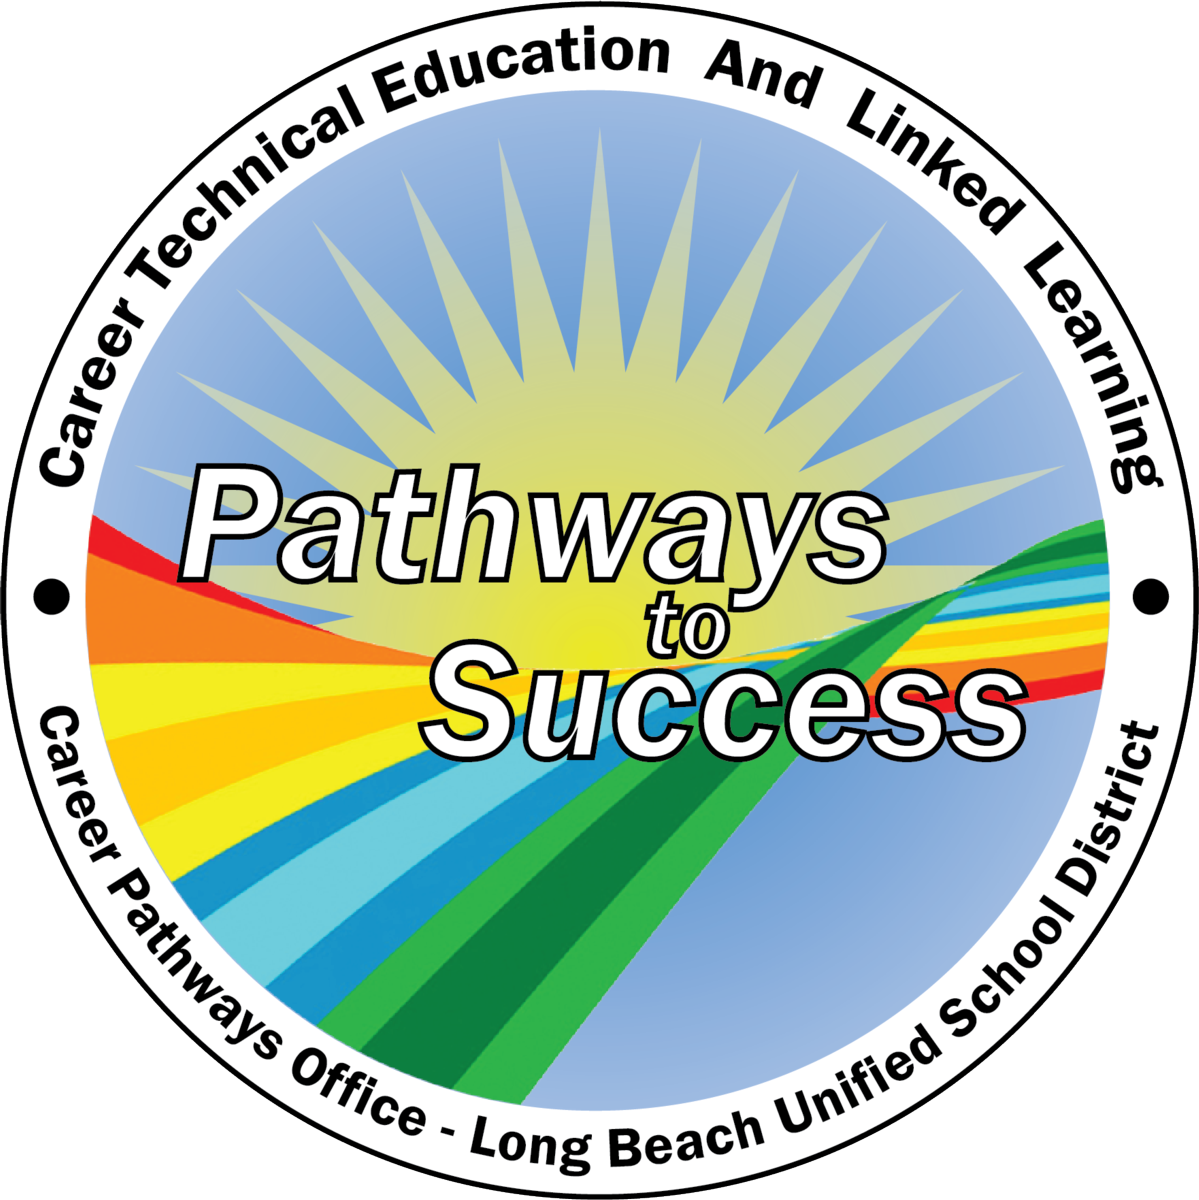 Career Technical Education And Linked Learning Logo